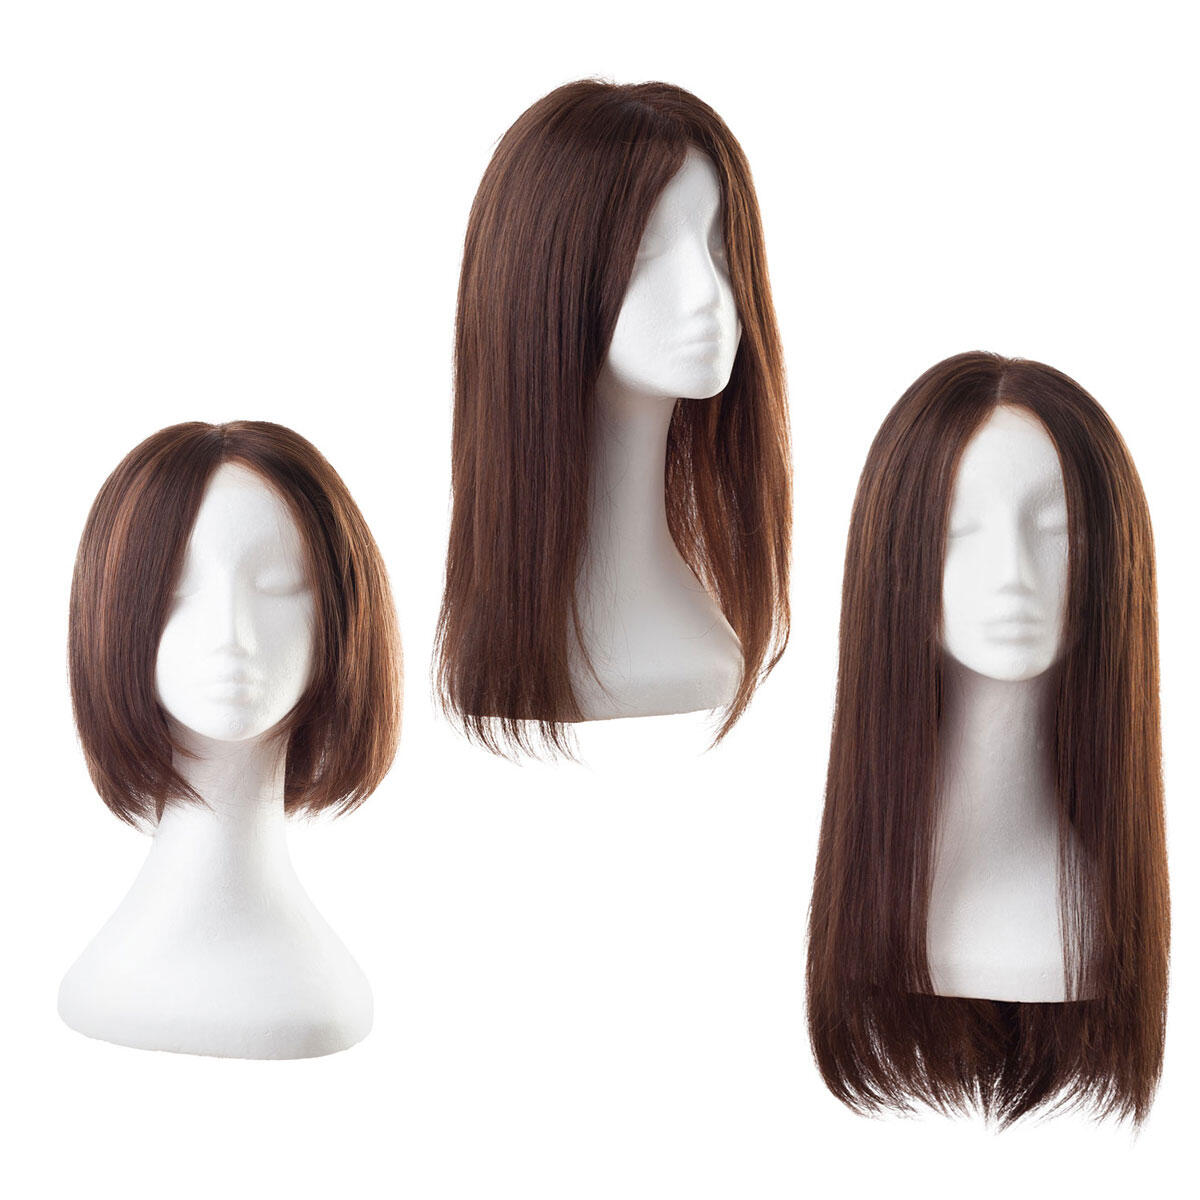 Lace Wig 2.3 Chocolate Brown 45 cm